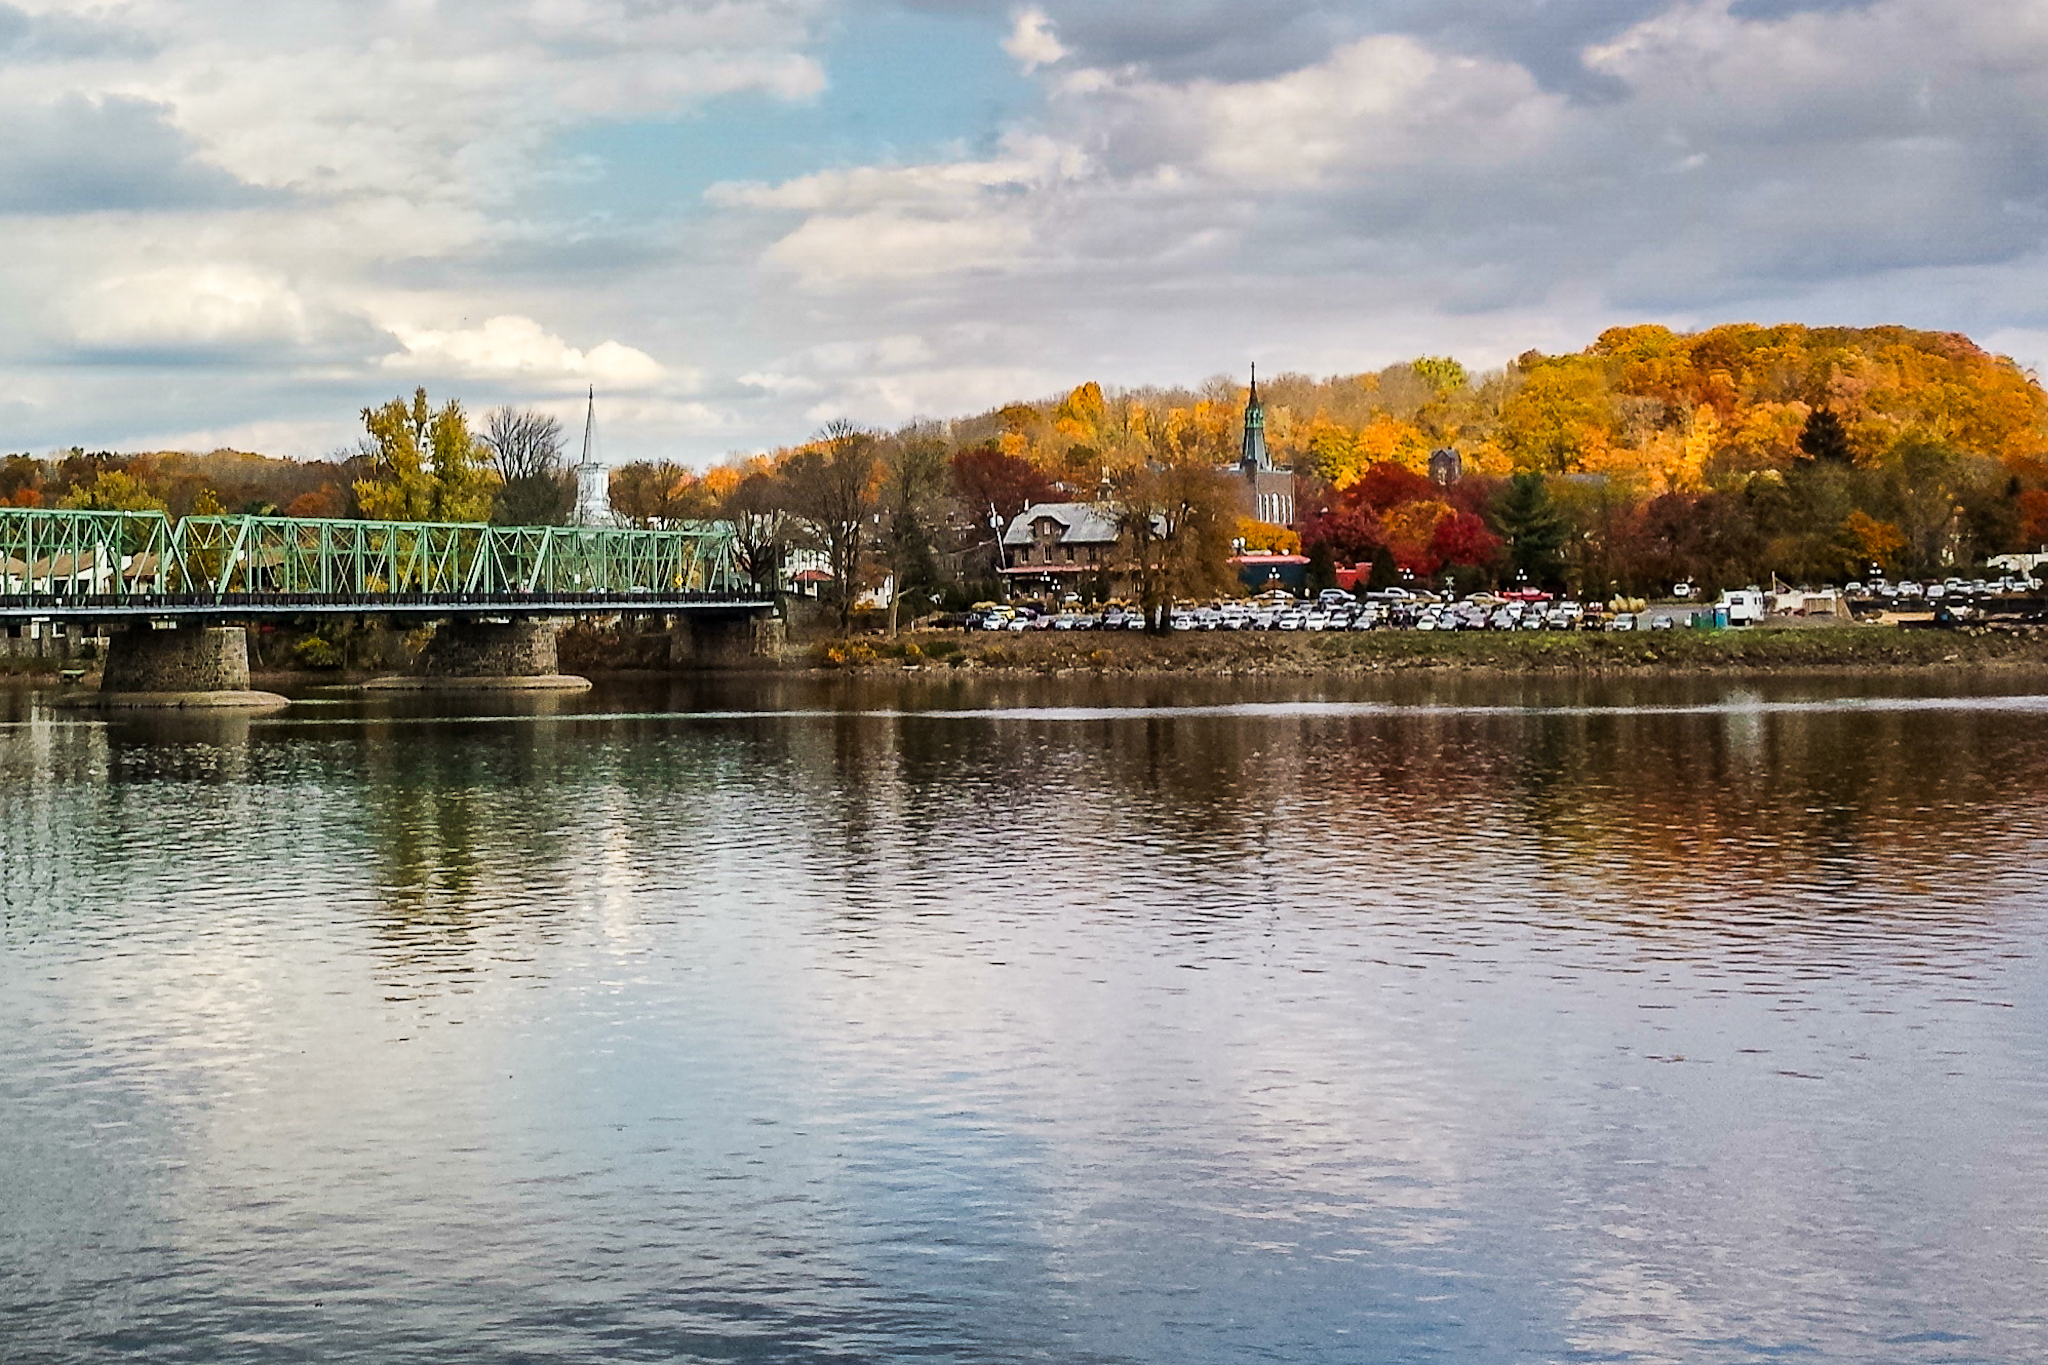 Check our guide to the best fall weekend getaways in PA